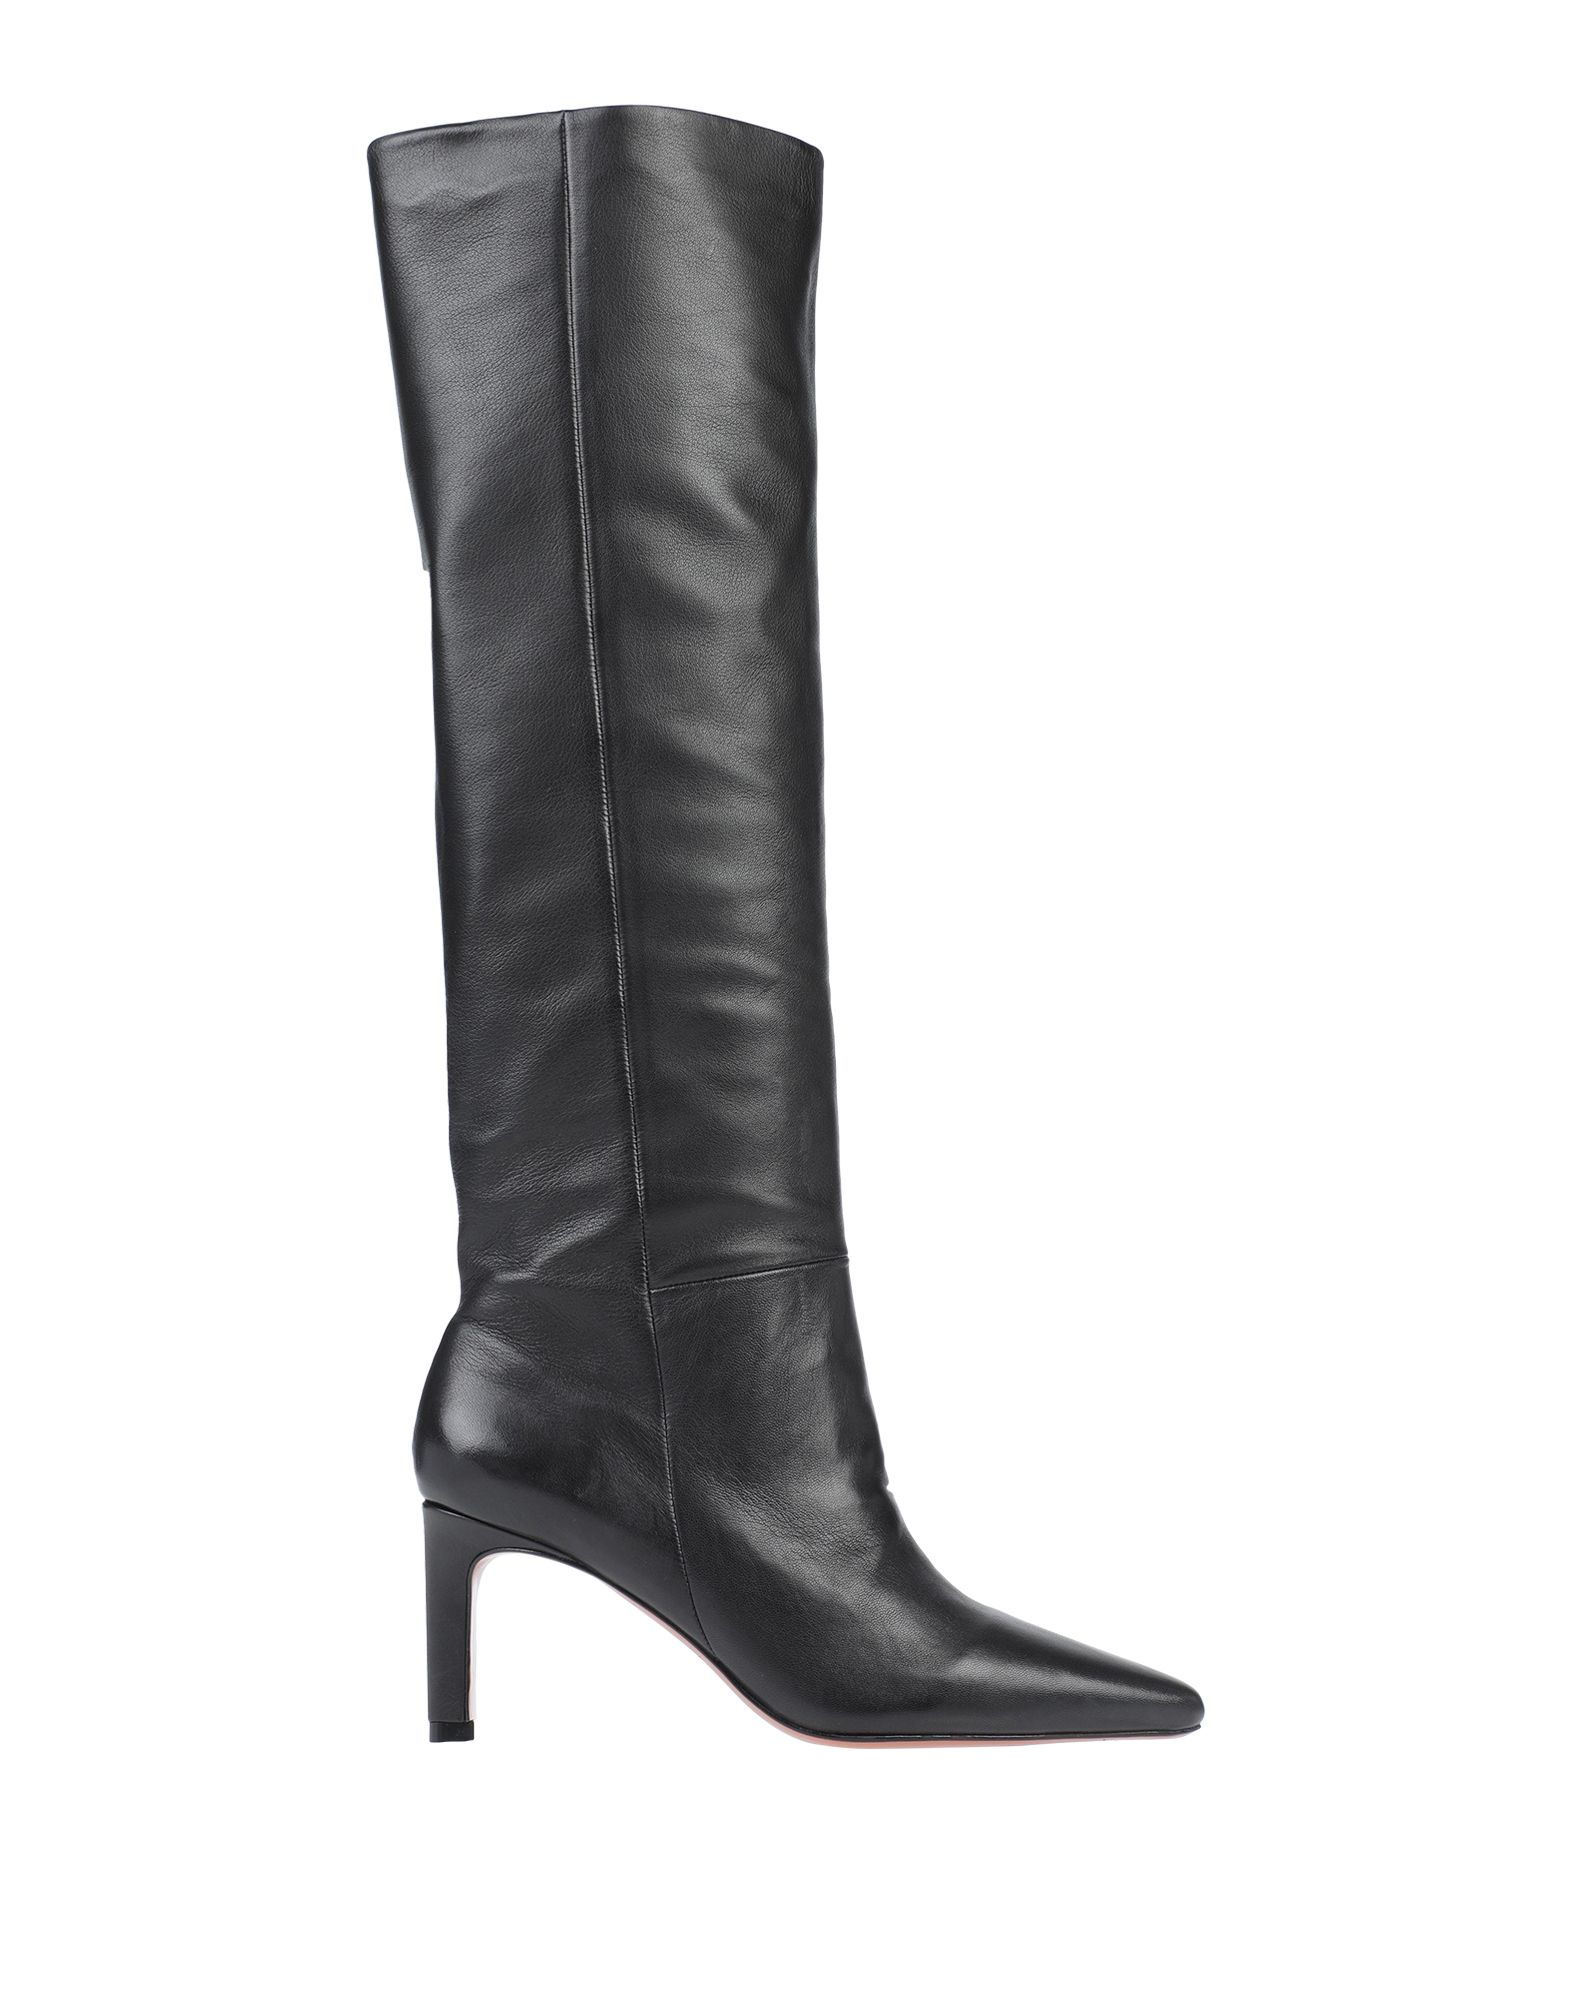 ZIMMERMANN Boots. leather, no appliqués, solid color, stiletto heel, narrow toeline, leather lining, leather sole, contains non-textile parts of animal origin. Soft Leather